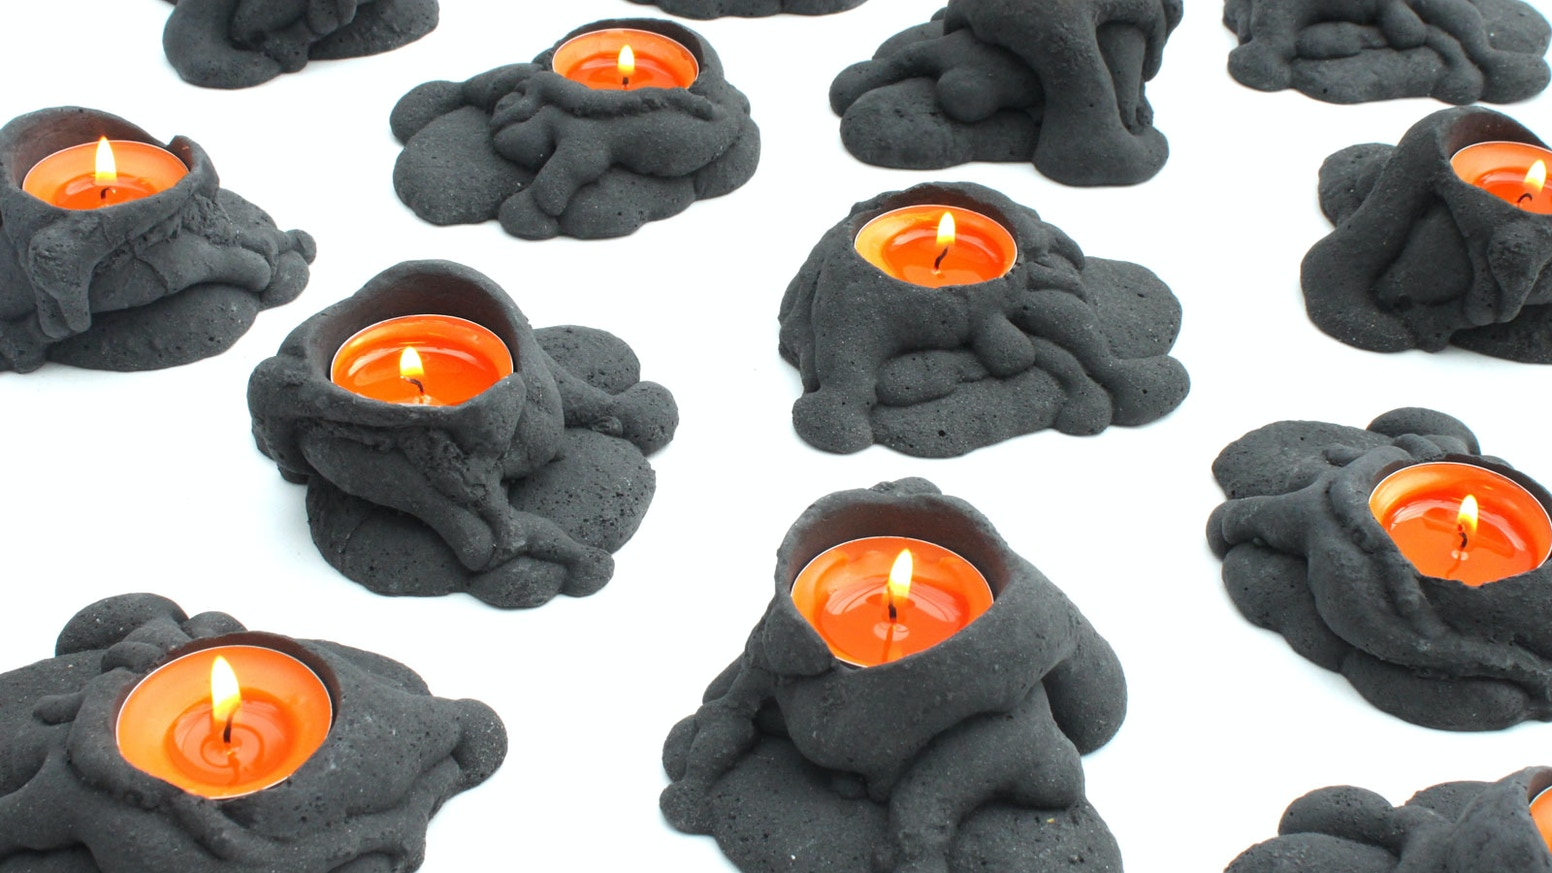 Candle holders, inspired by volcanoes. Evoking the molten glow of flowing lava.